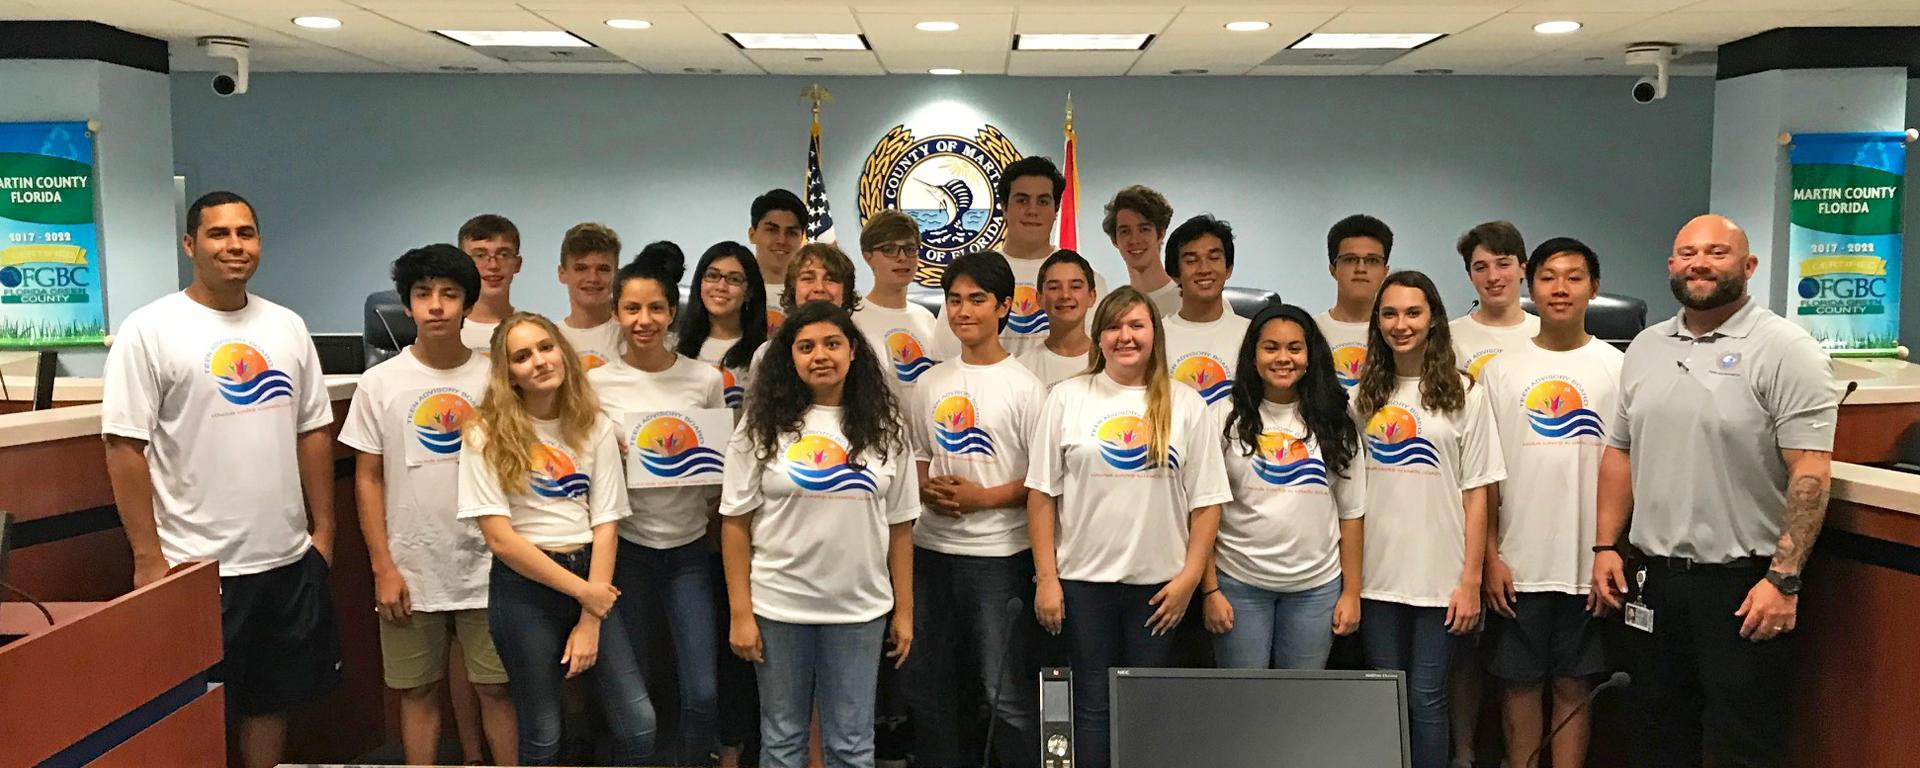 Teens meeting for the Teen Advisory Board meeting at the County Administration Building.